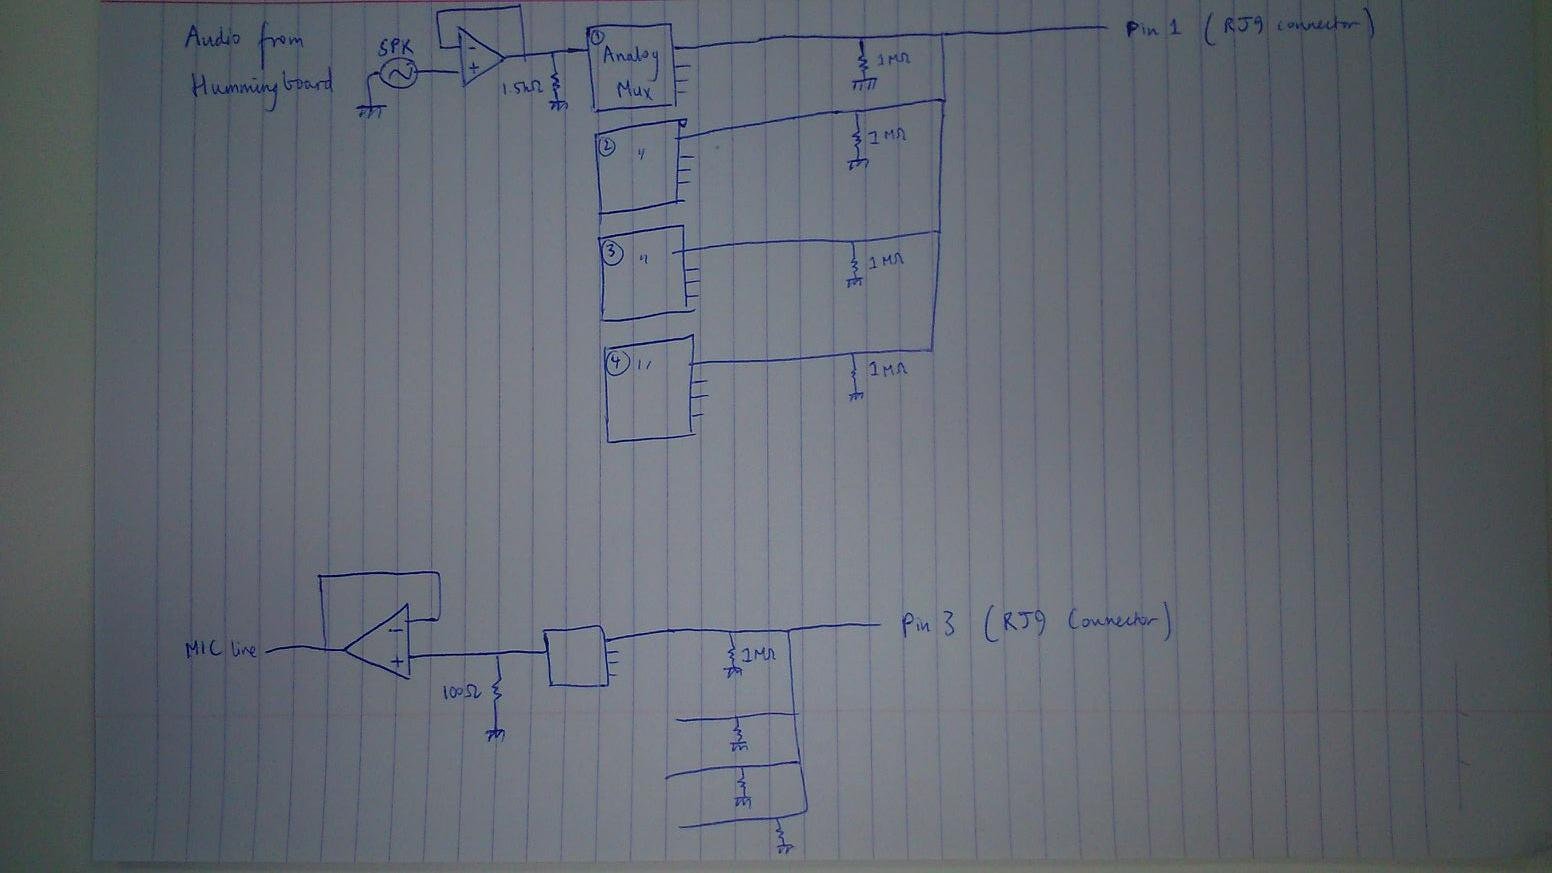 hight resolution of rj9 to 3 5mm wiring diagram wiring library rj9 to 3 5mm wiring diagram